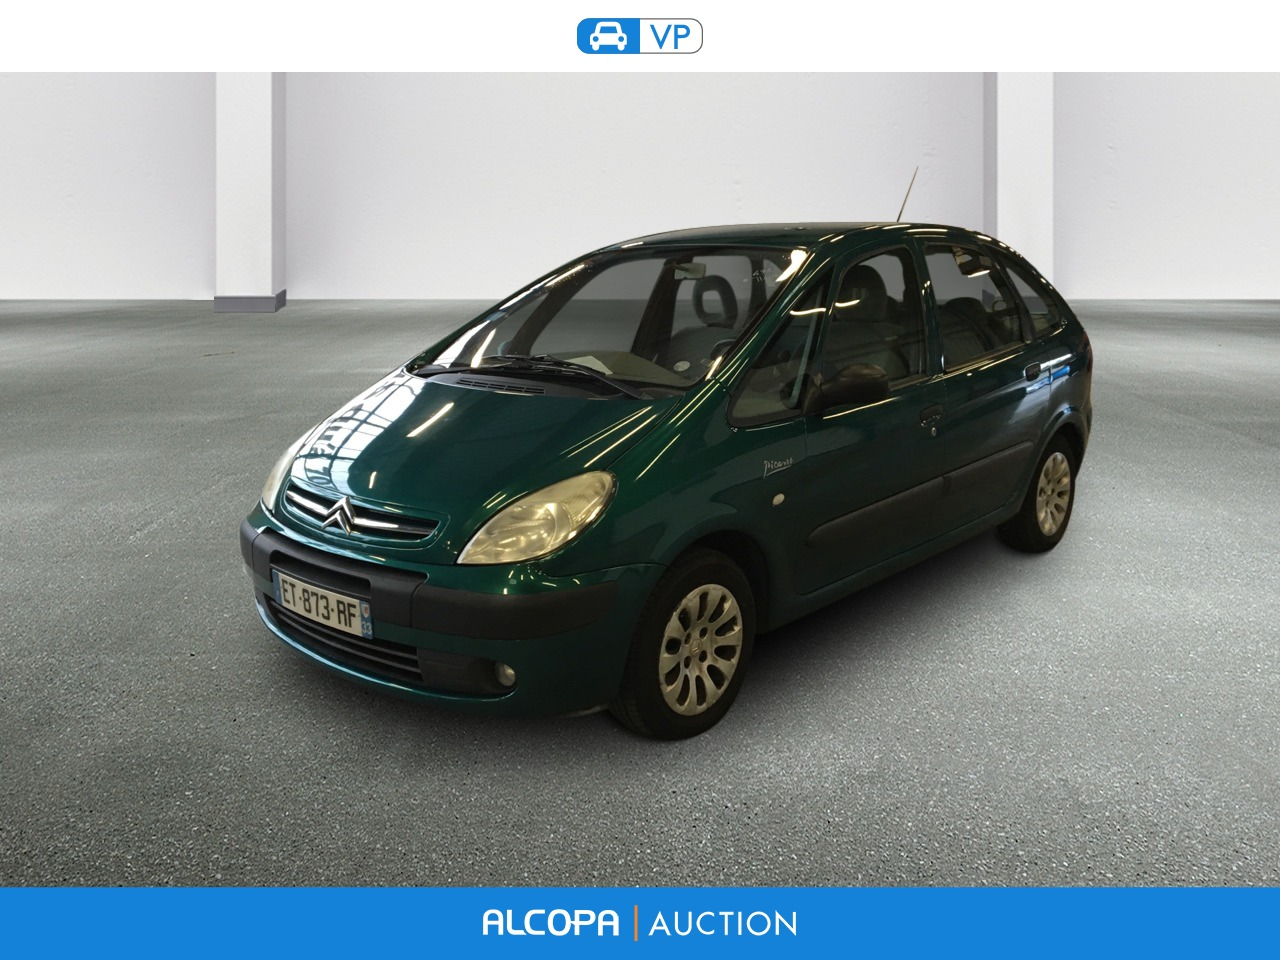 citroen xsara picasso xsara picasso 2 0 hdi 90 pack alcopa auction. Black Bedroom Furniture Sets. Home Design Ideas